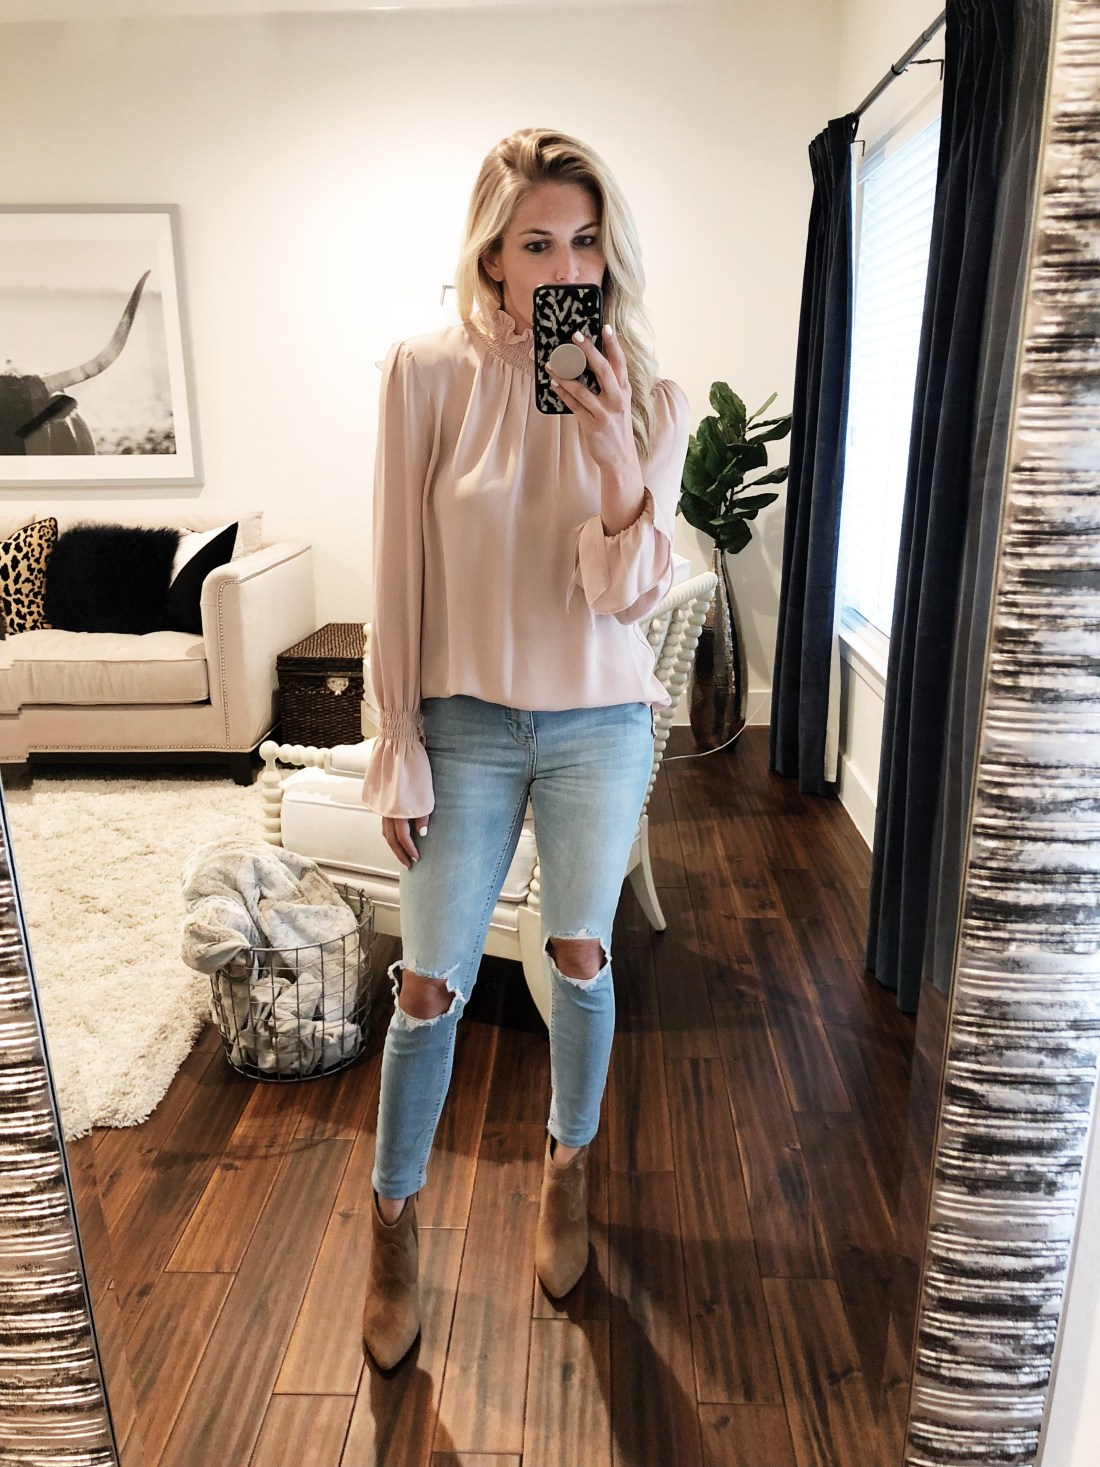 Vince Camuto Motiva Bootie // Size 7 1/2  Vince Camuto Smocked Neck Blouse // Size S  Free People High Waist Ankle Skinny Jeans //